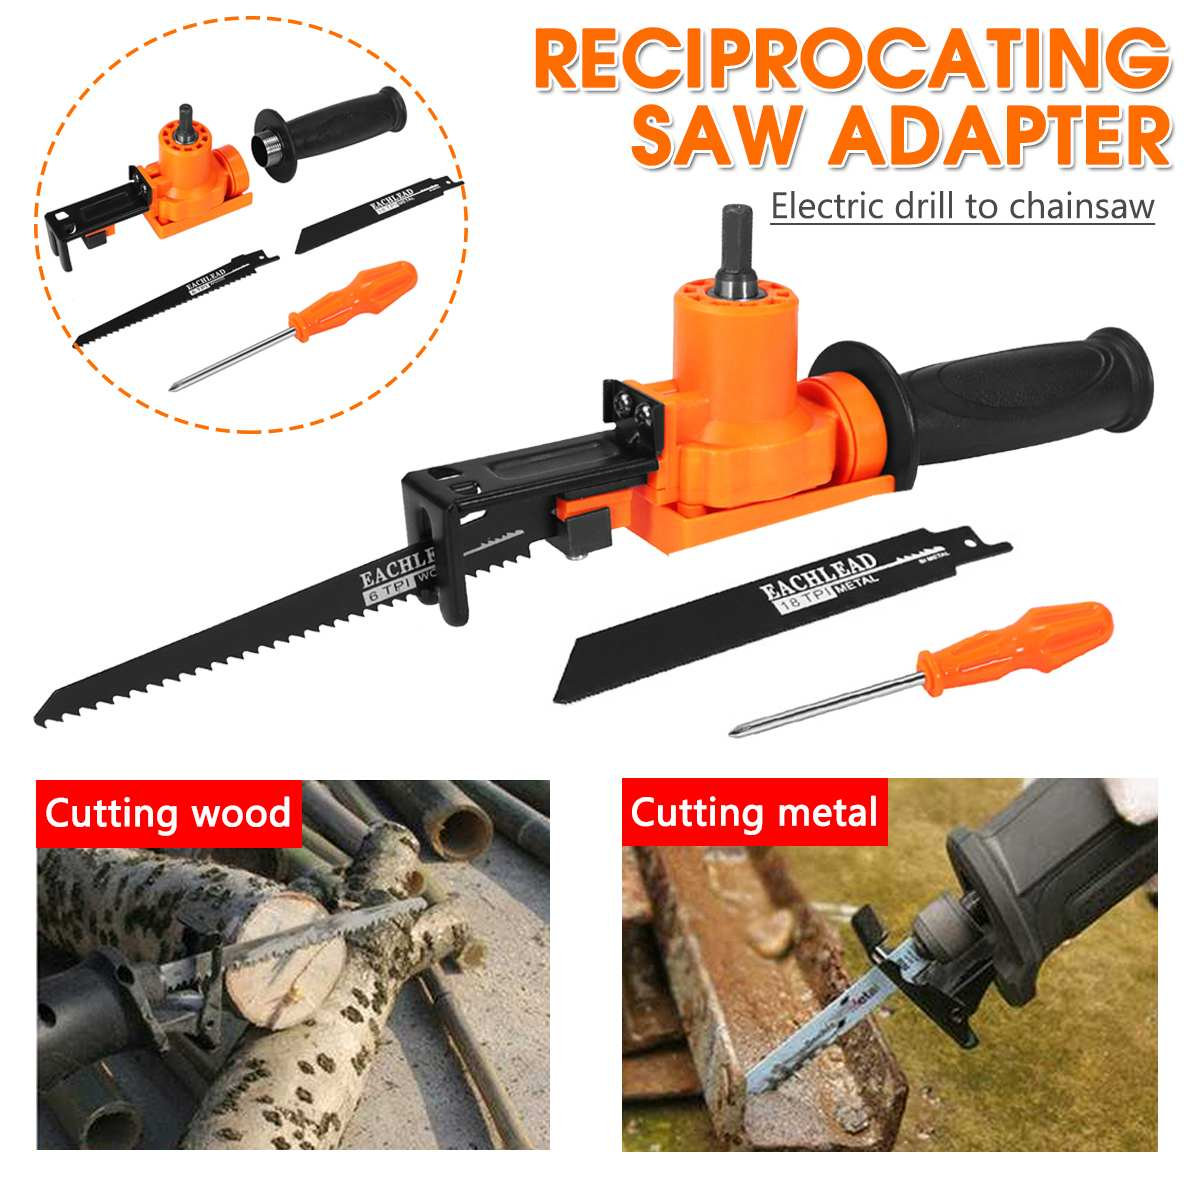 Becornce Reciprocating Saw Adapter Electric Drill Modified Electric Saw Hand Tool Wood Metal Cutter Long Service Life Durability